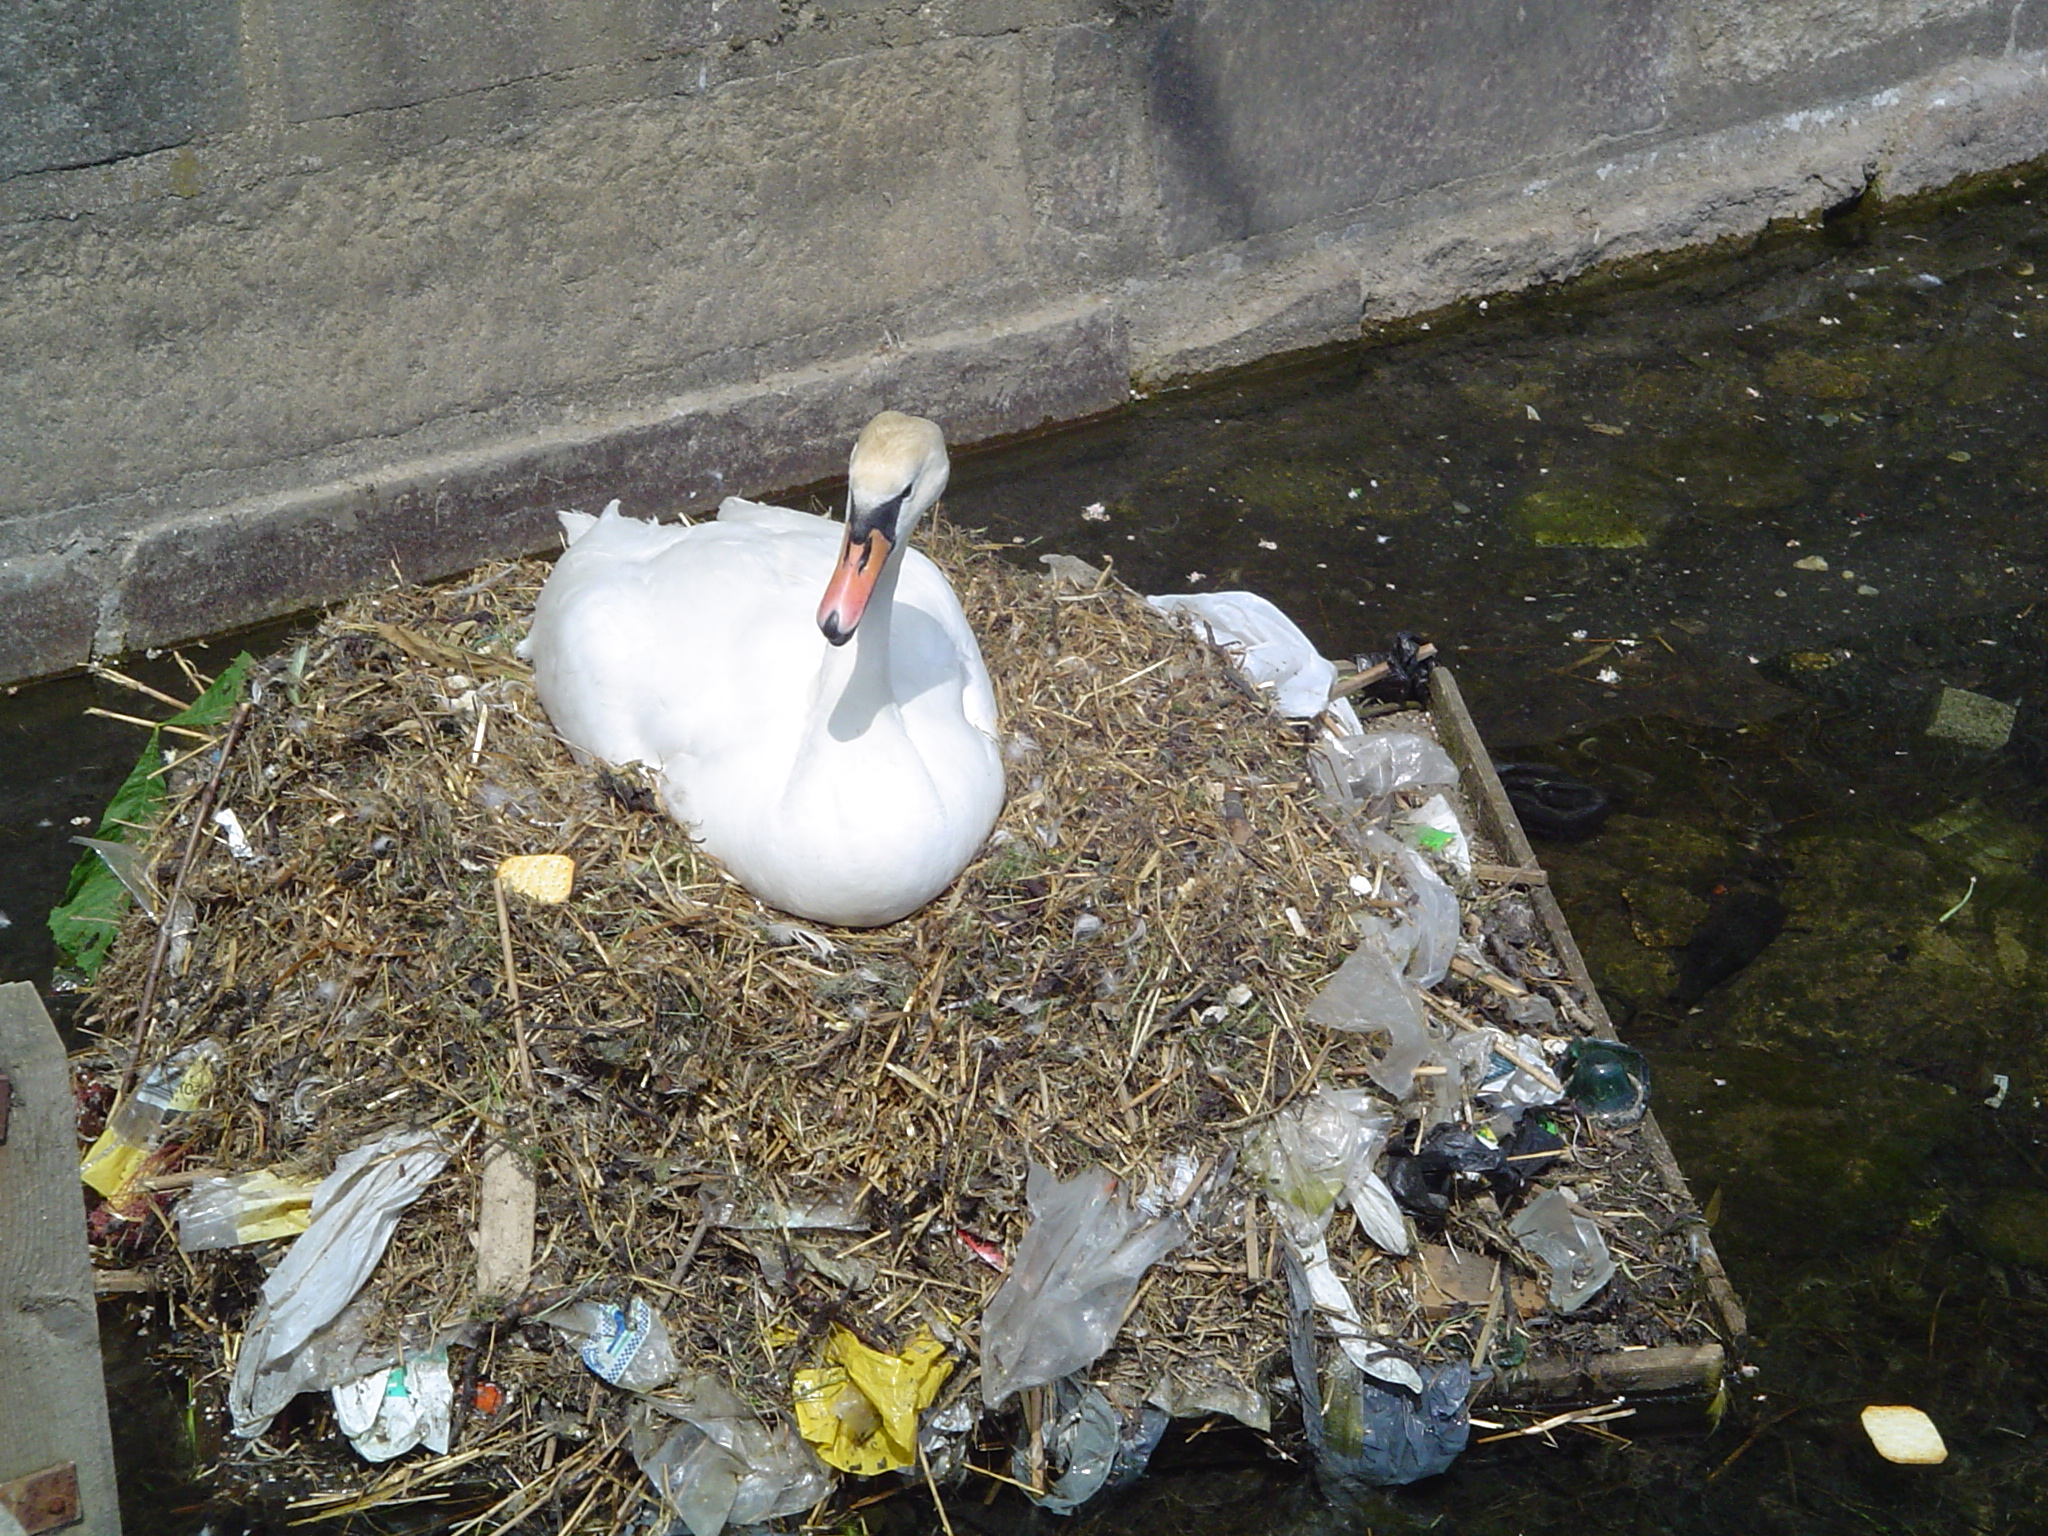 https://upload.wikimedia.org/wikipedia/commons/4/47/Pollution_swan.jpg